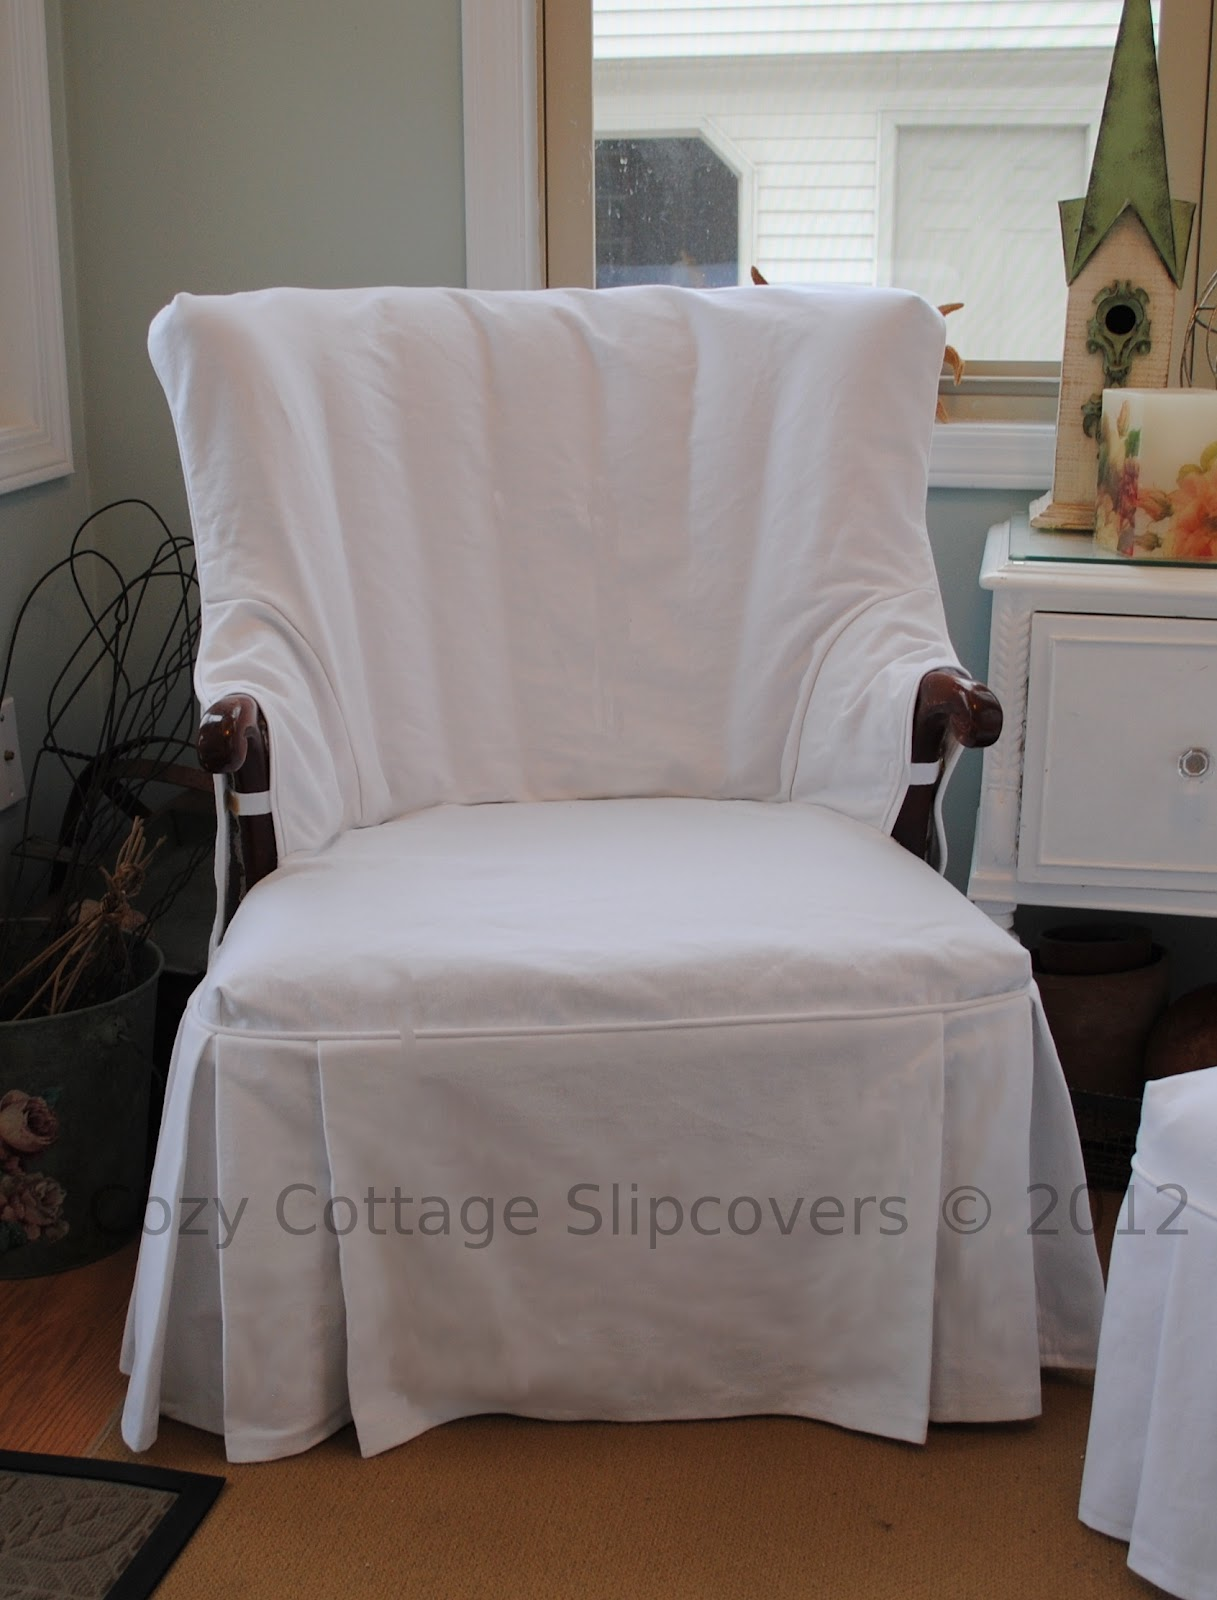 Cozy Cottage Slipcovers Old Blog